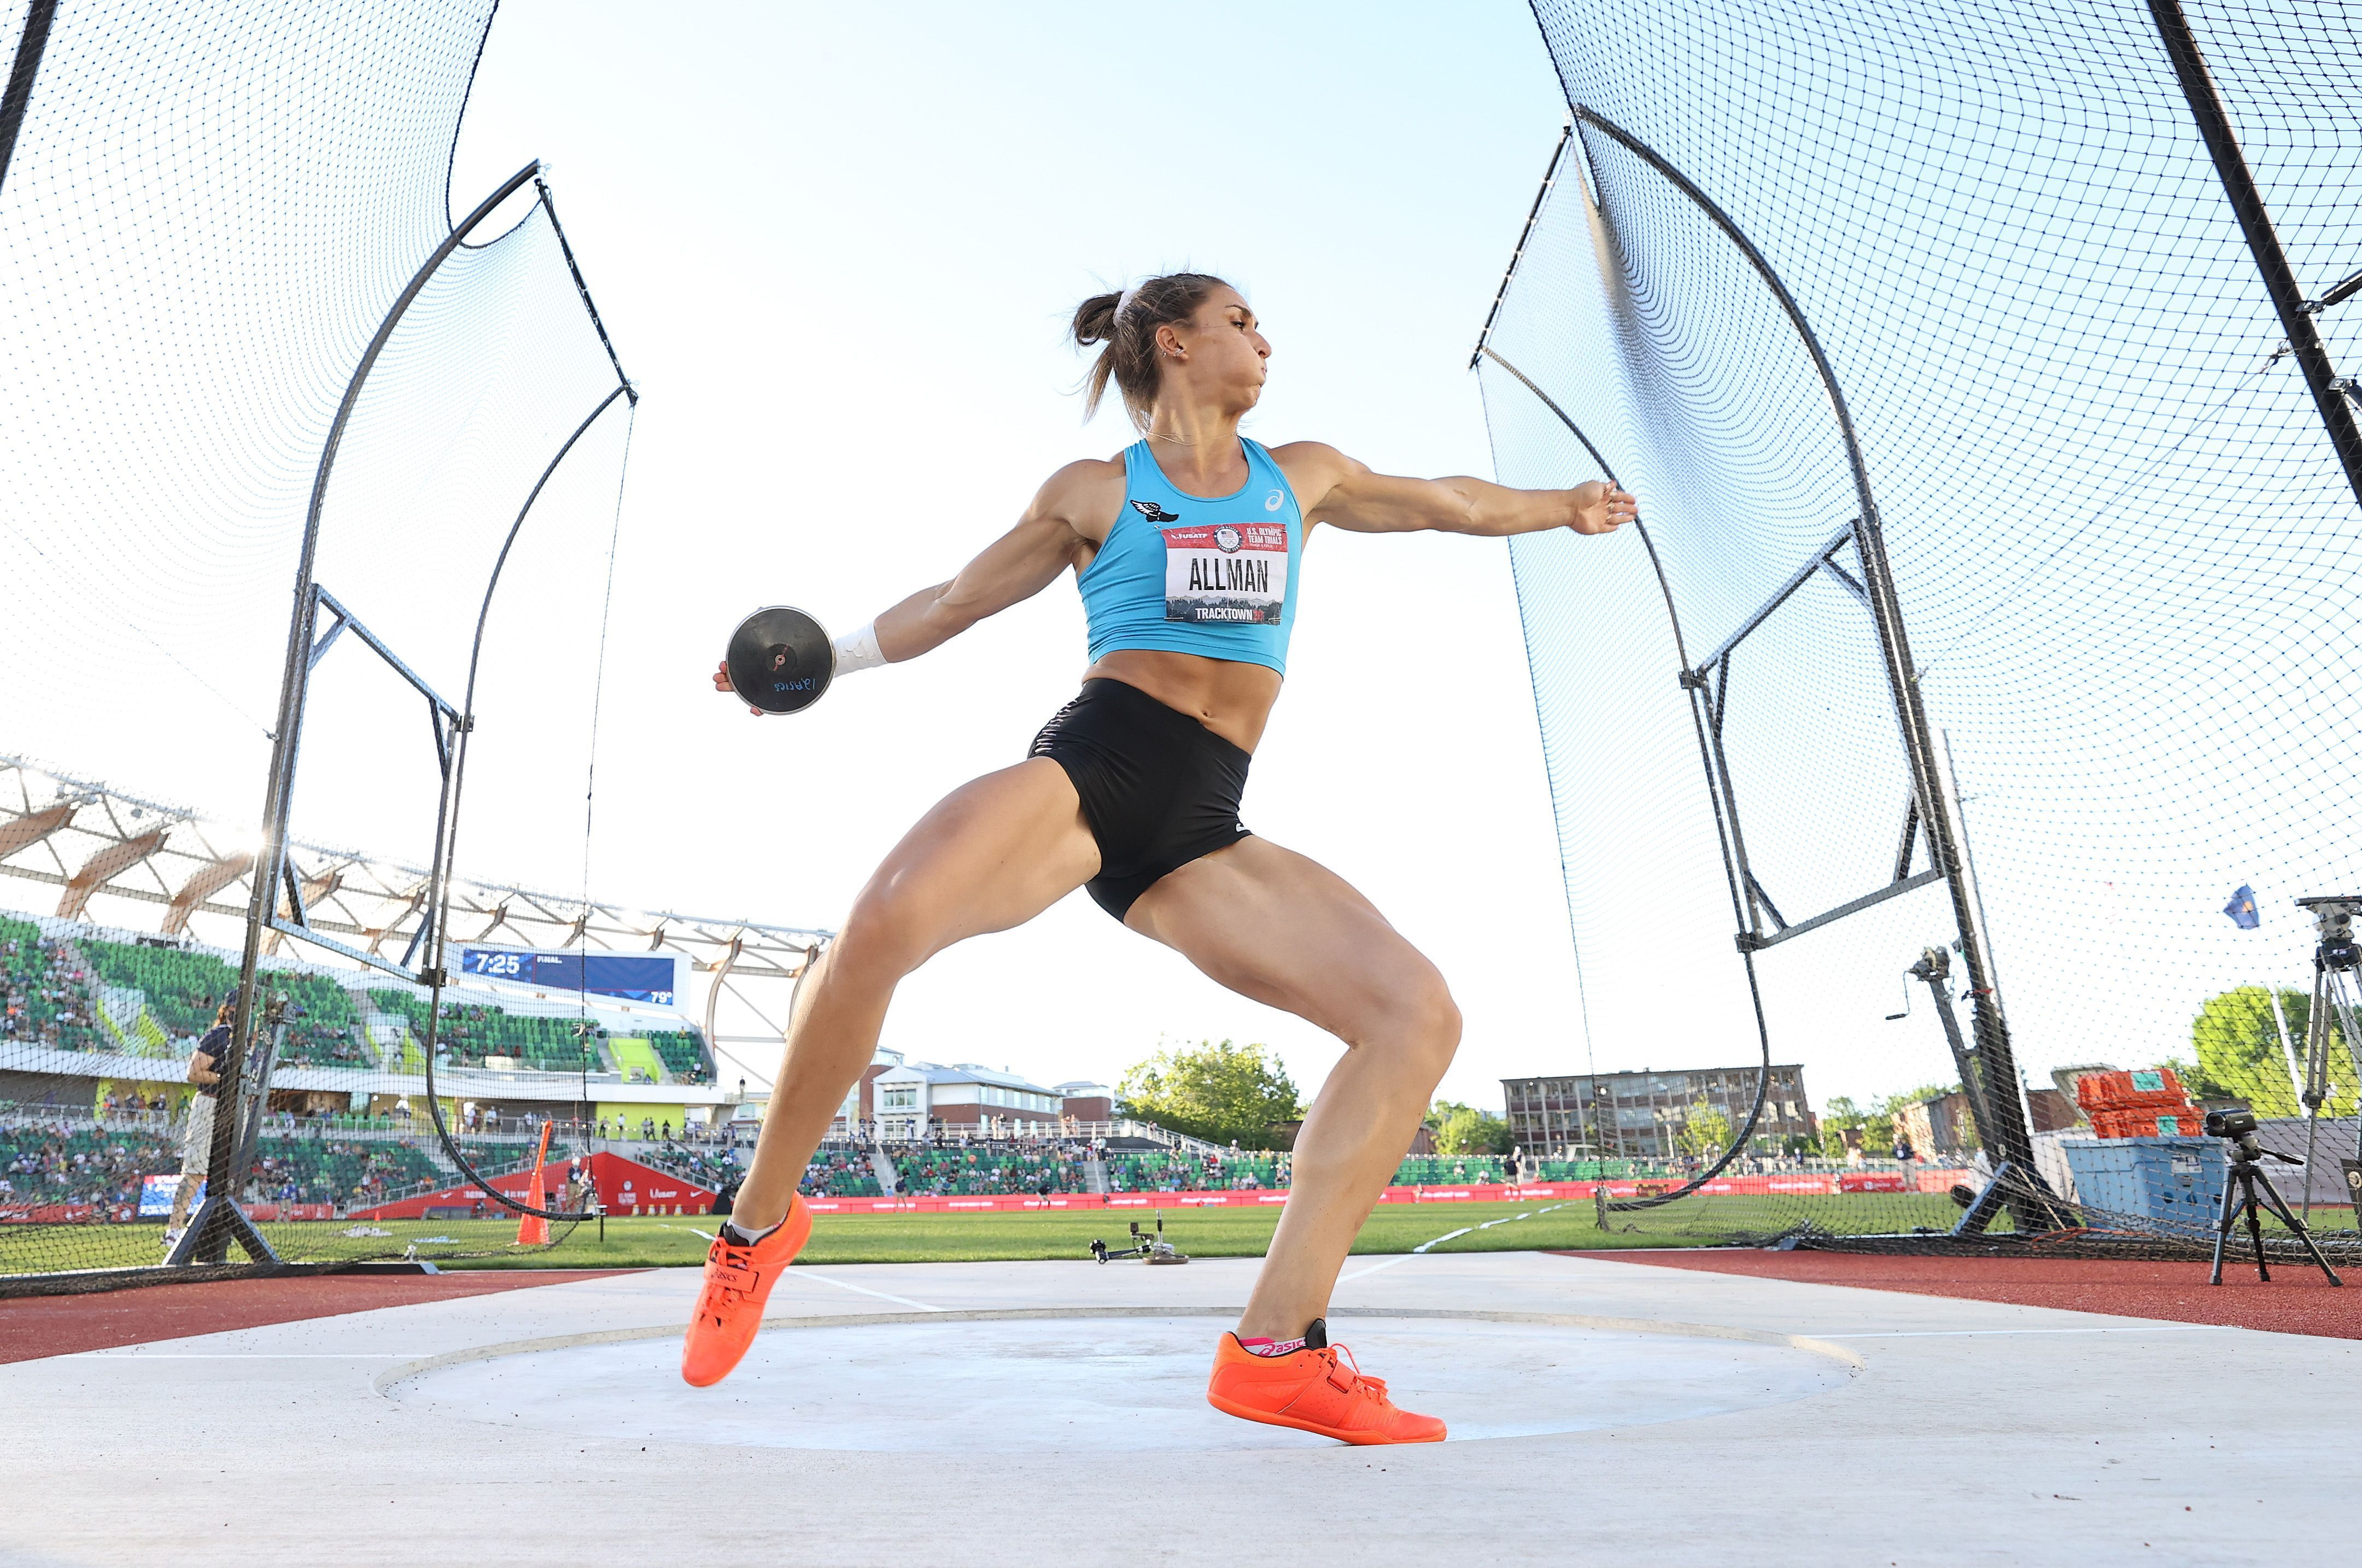 Valarie Allman competes in the discus throw at the U.S. team trials in June. Photo: Andy Lyons/Getty Images